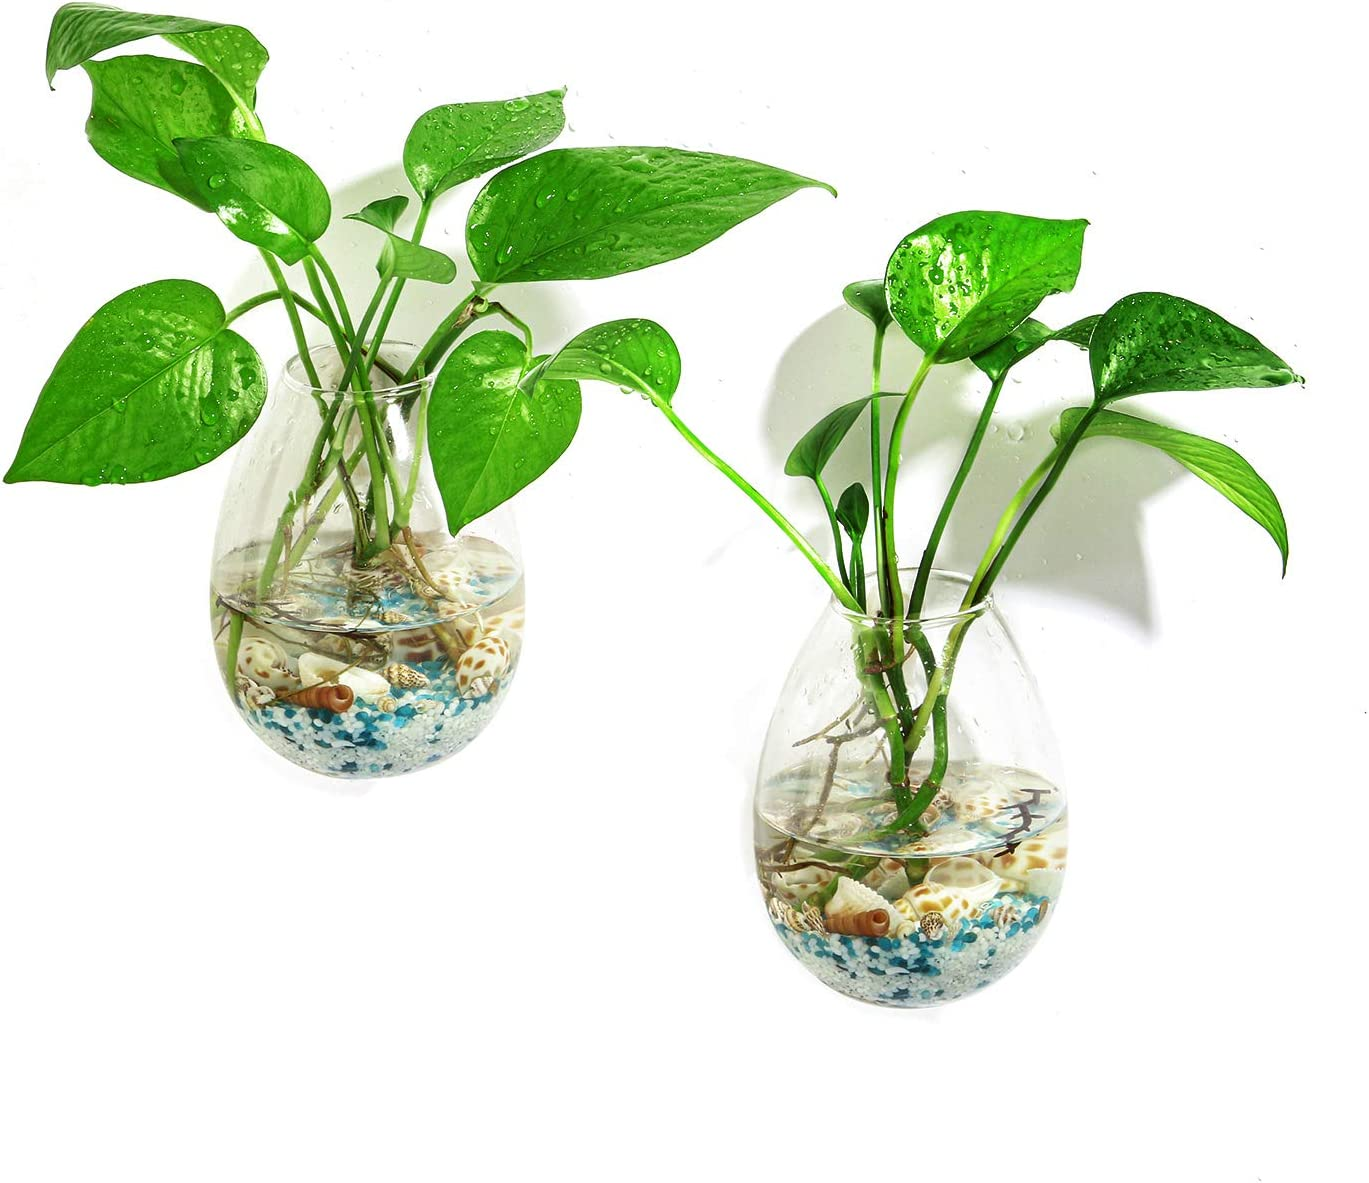 Ivolador 2PCS Wall Hanging Glass Plant Terrarium Container Egg Shape Perfect for Home Office Garden Decor Wedding